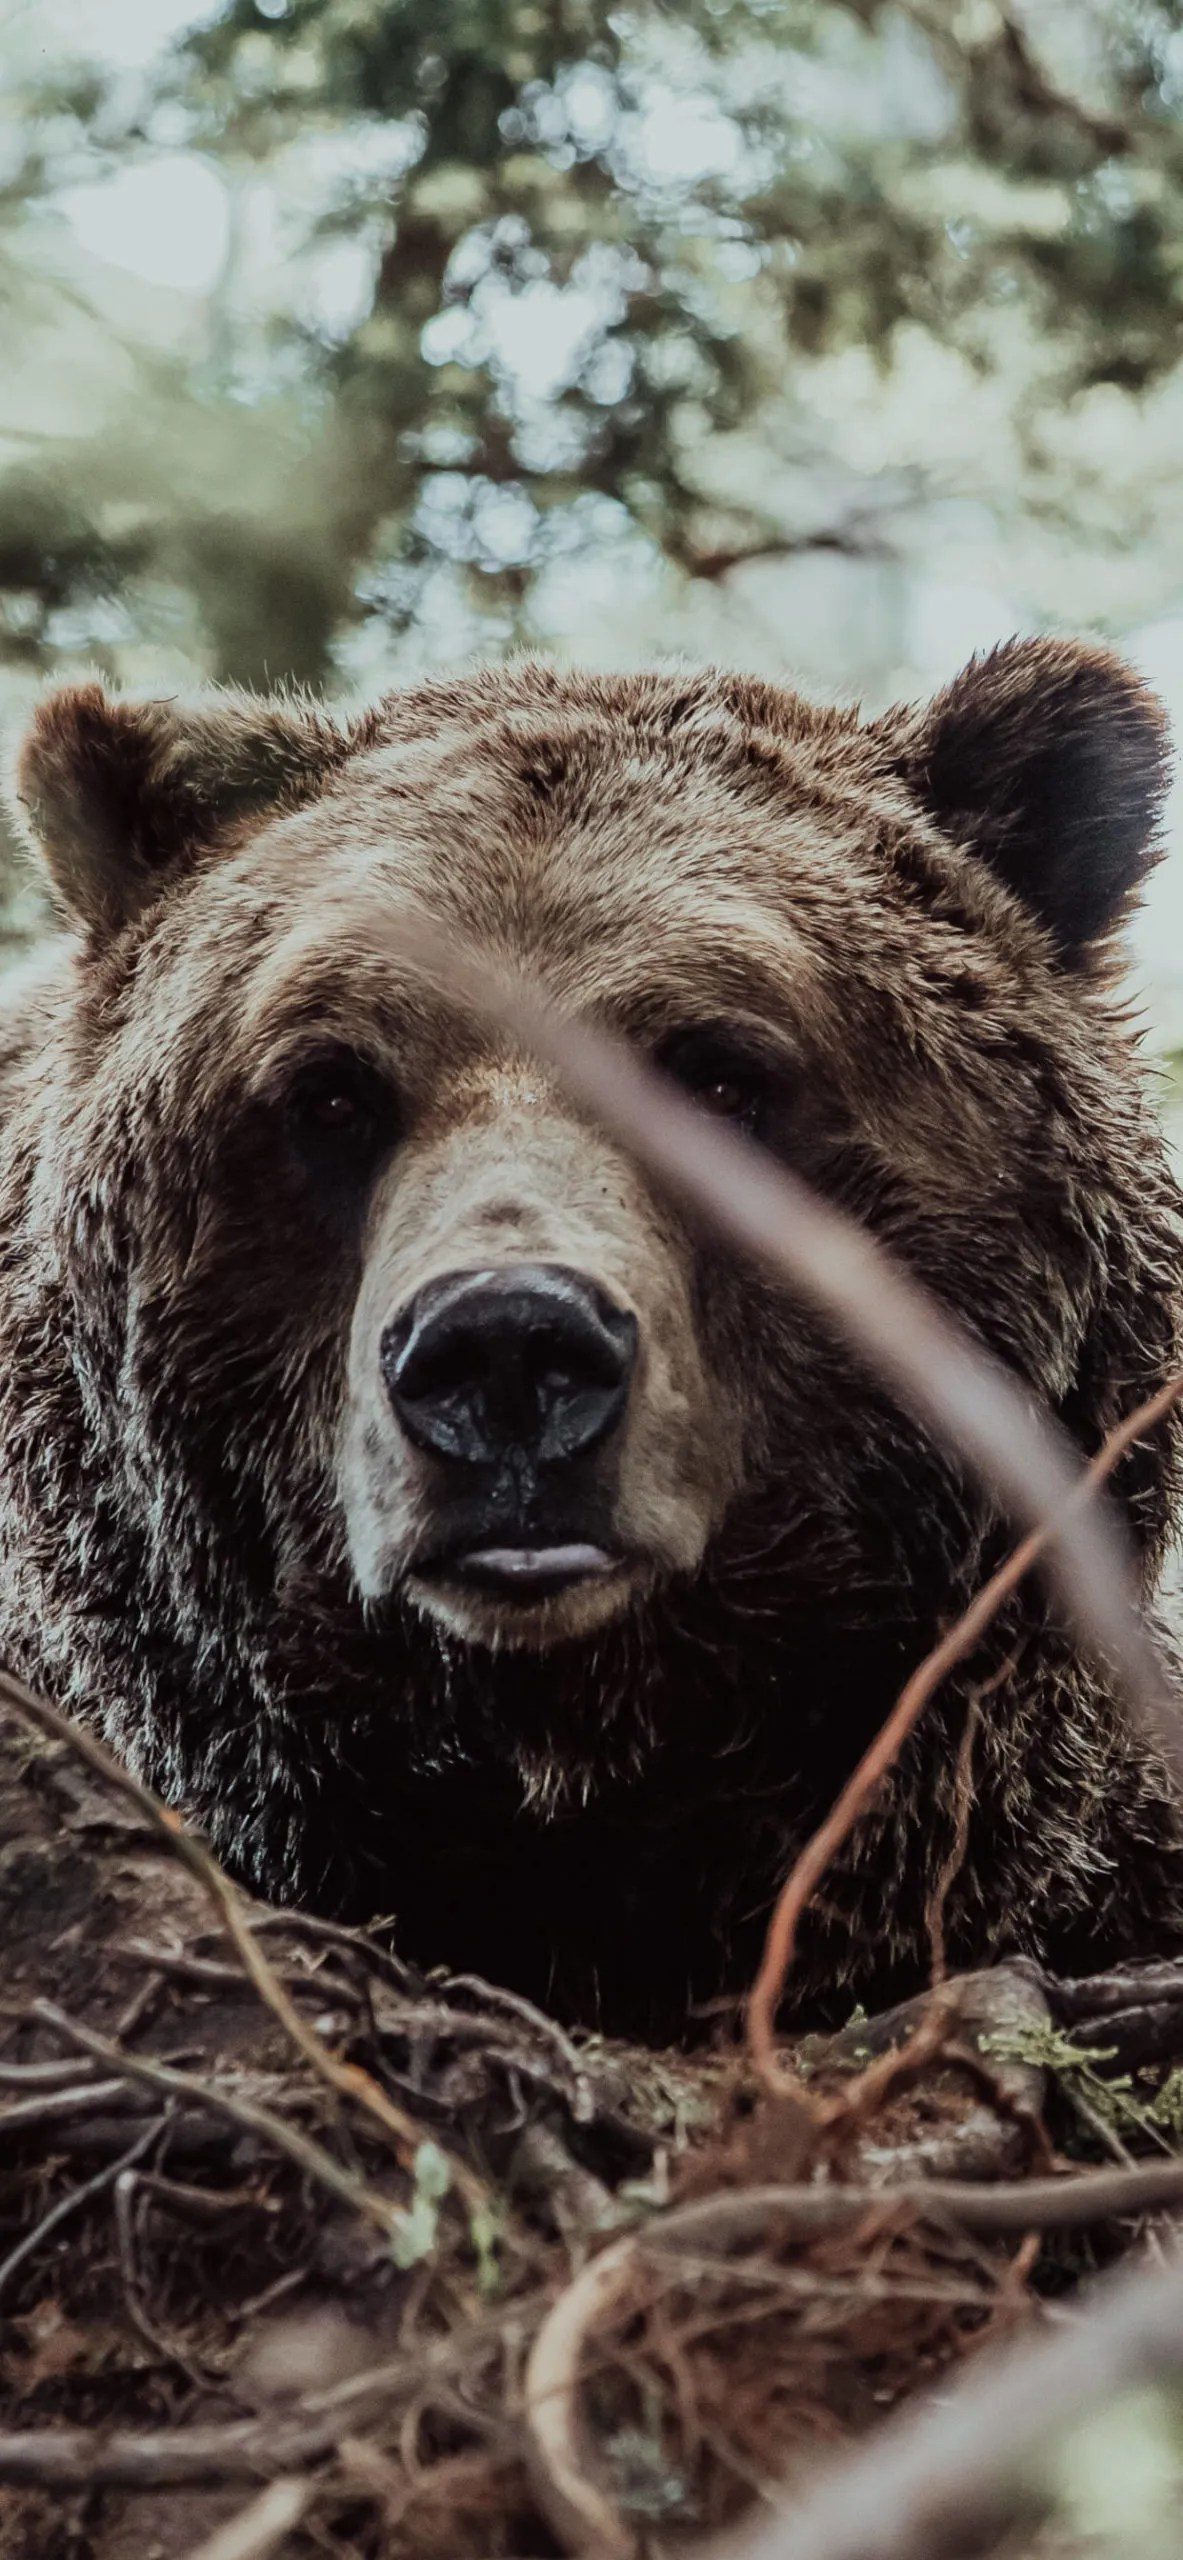 iPhone wallpapers bear vancouver scaled Bear